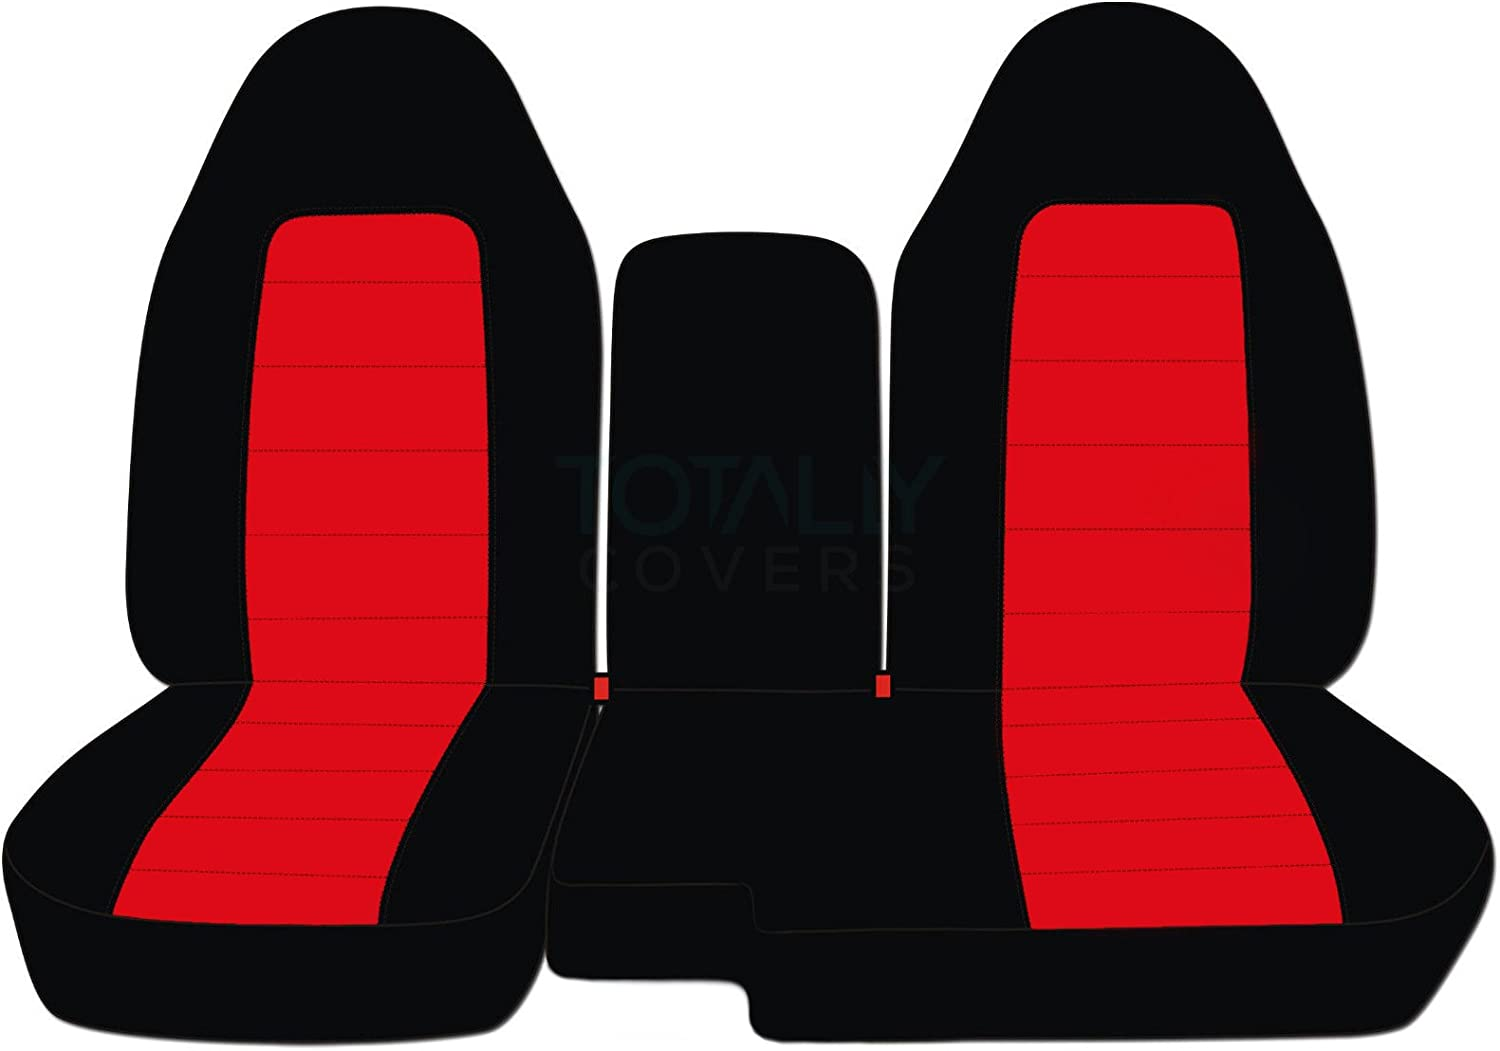 Totally Covers Compatible with 2004-2012 Ford Ranger//Mazda B-Series Two-Tone Truck Seat Covers 60//40 Split Bench w Center Console//Armrest Cover: Black /& Cute Pink 21 Colors